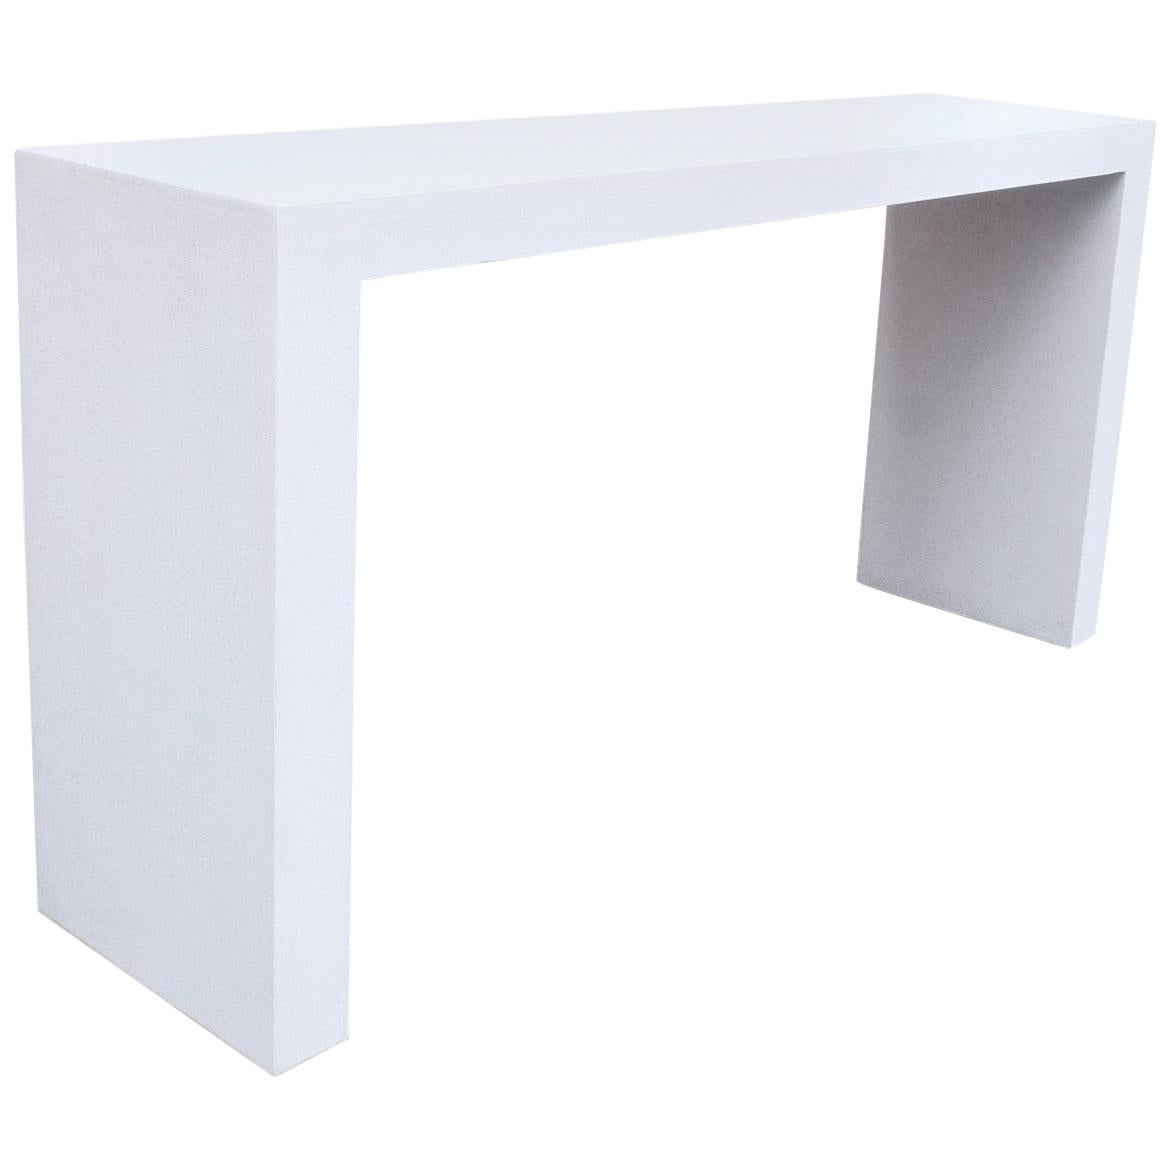 Cast Resin U0027Lynne Tellu0027 Console Table, White Stone Finish By Zachary A.  Design